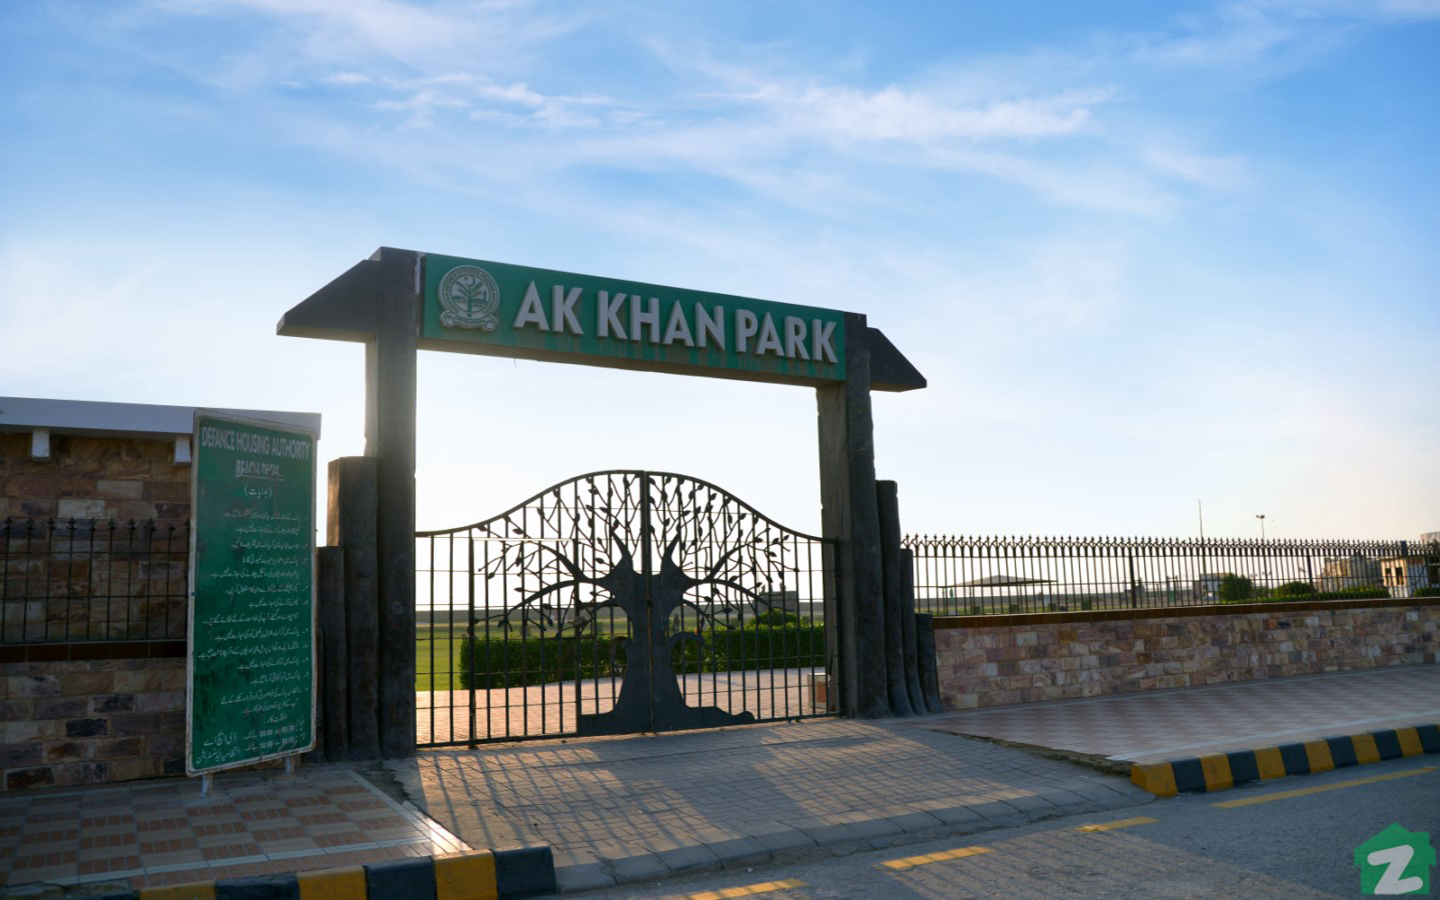 AK Khan Park is located less than a 5 minute drive away from DHA Phase V